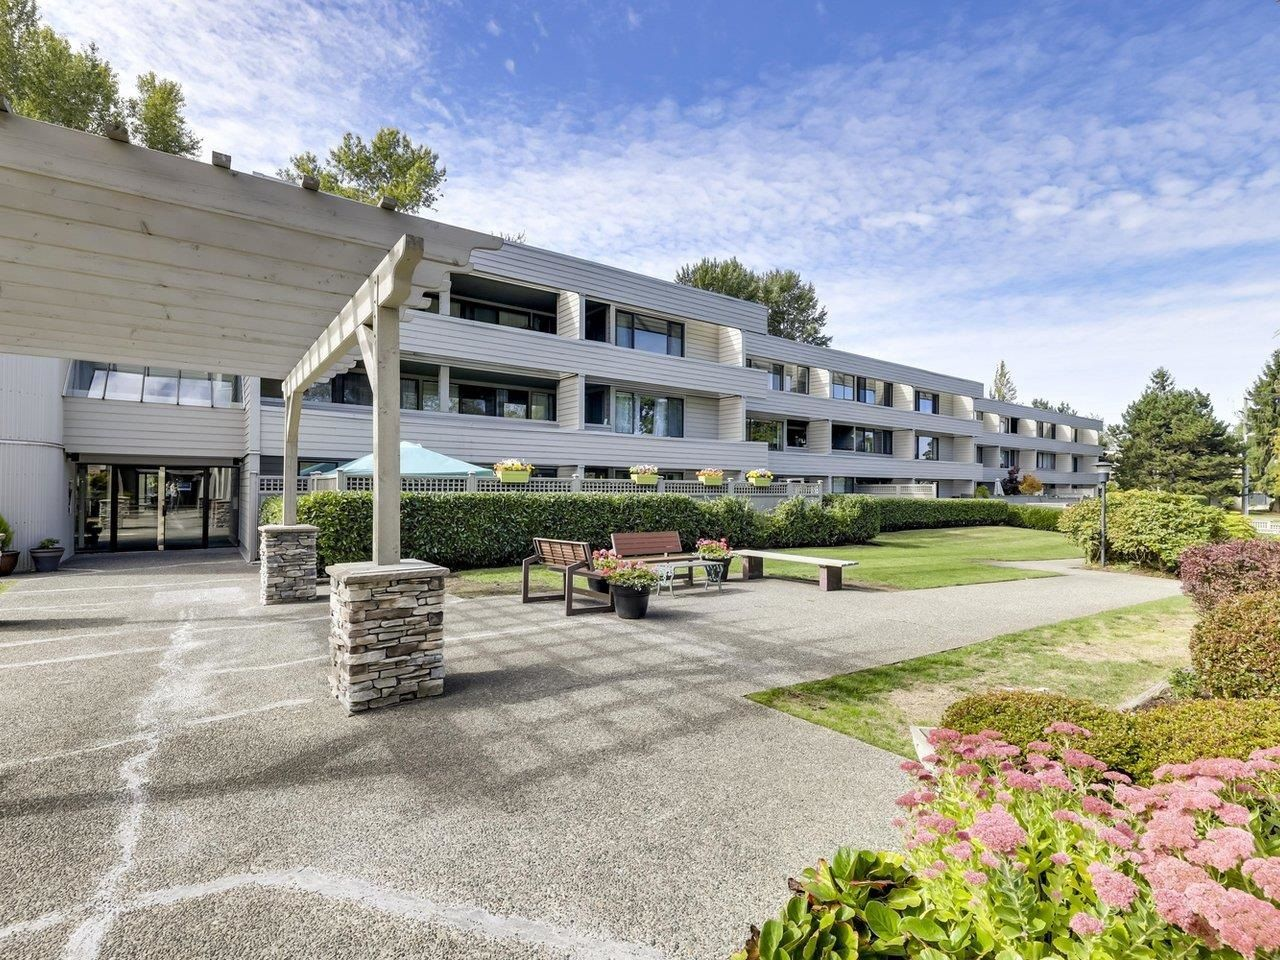 """Main Photo: 205 15272 19 Avenue in Surrey: King George Corridor Condo for sale in """"PARKVIEW PLACE"""" (South Surrey White Rock)  : MLS®# R2620365"""